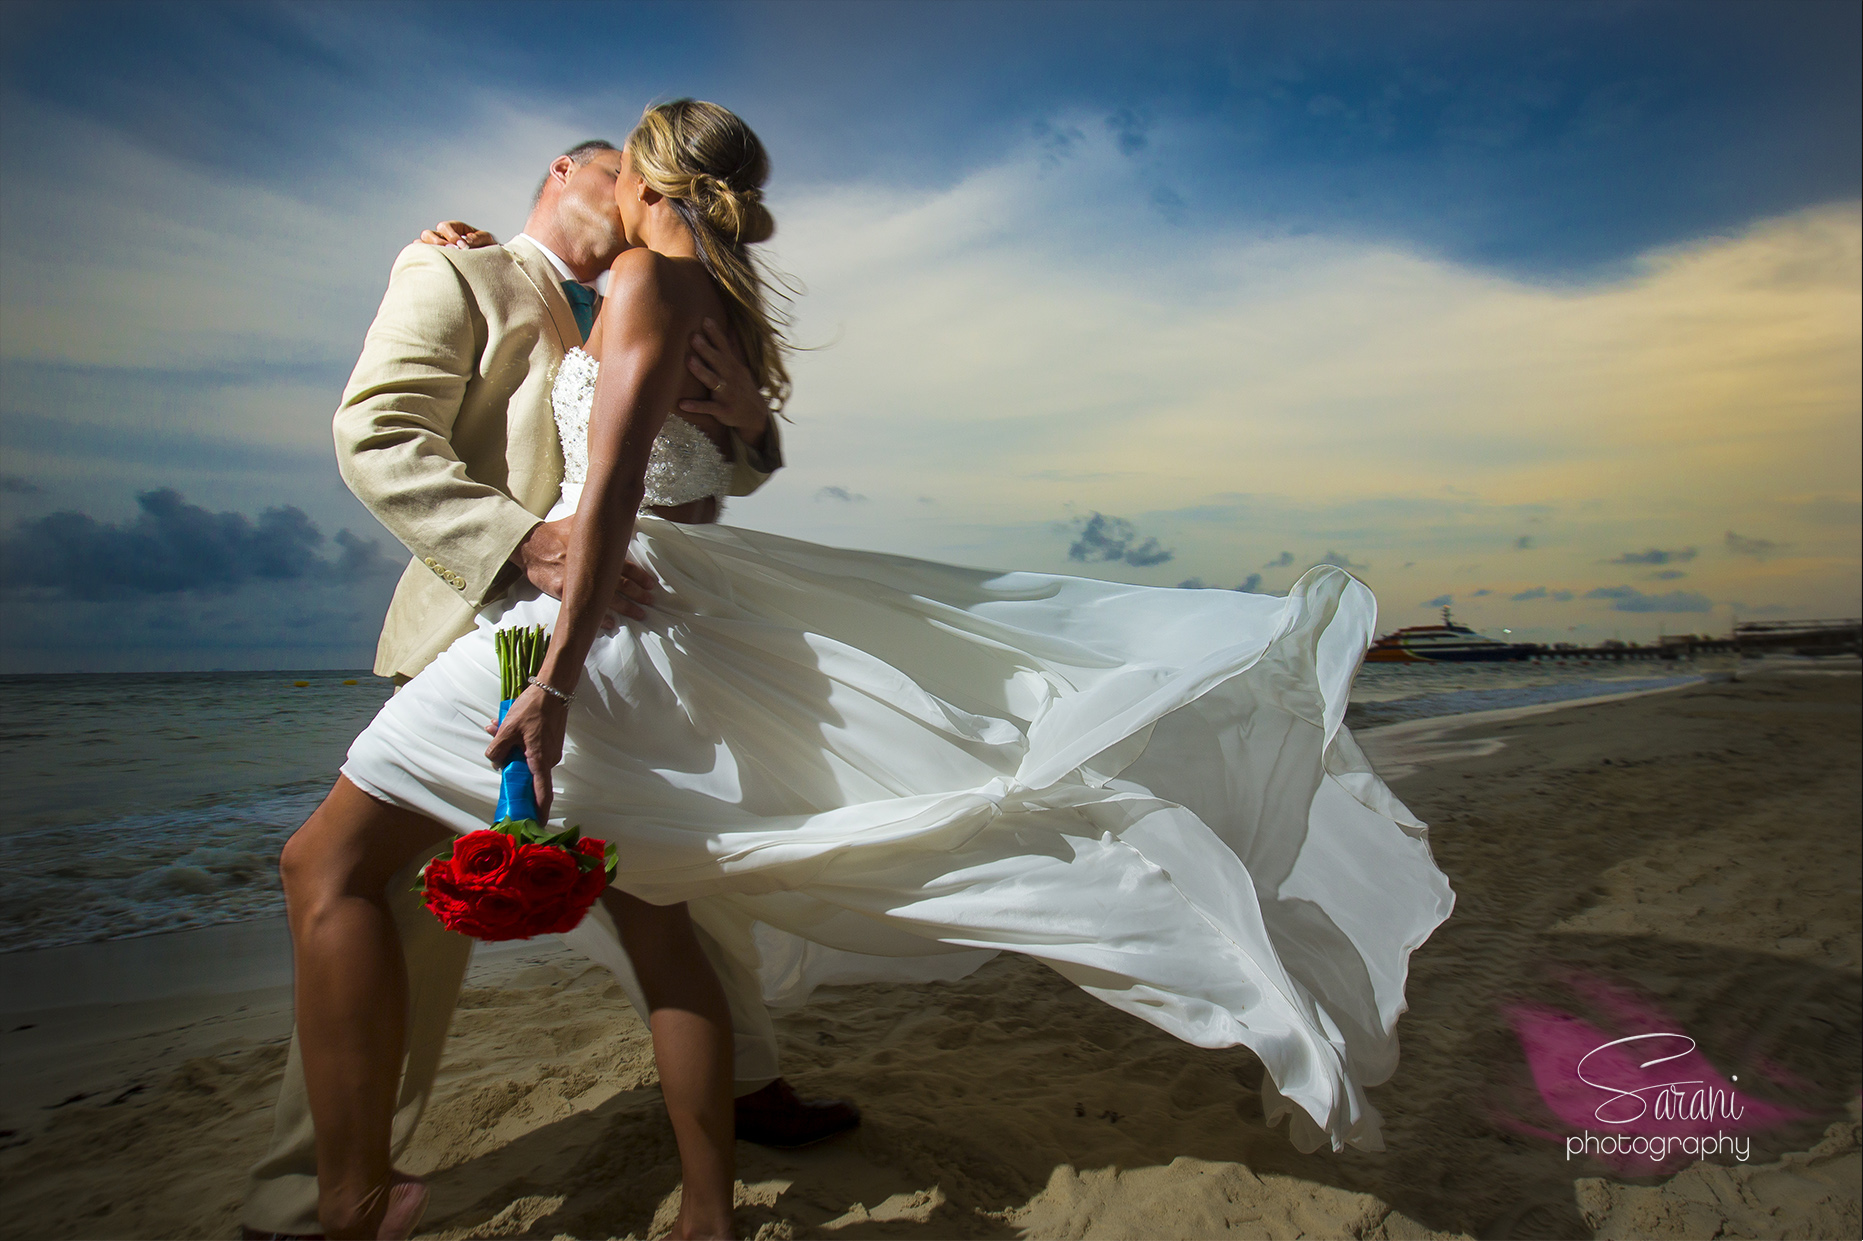 Trash the dress photo session in Cancun